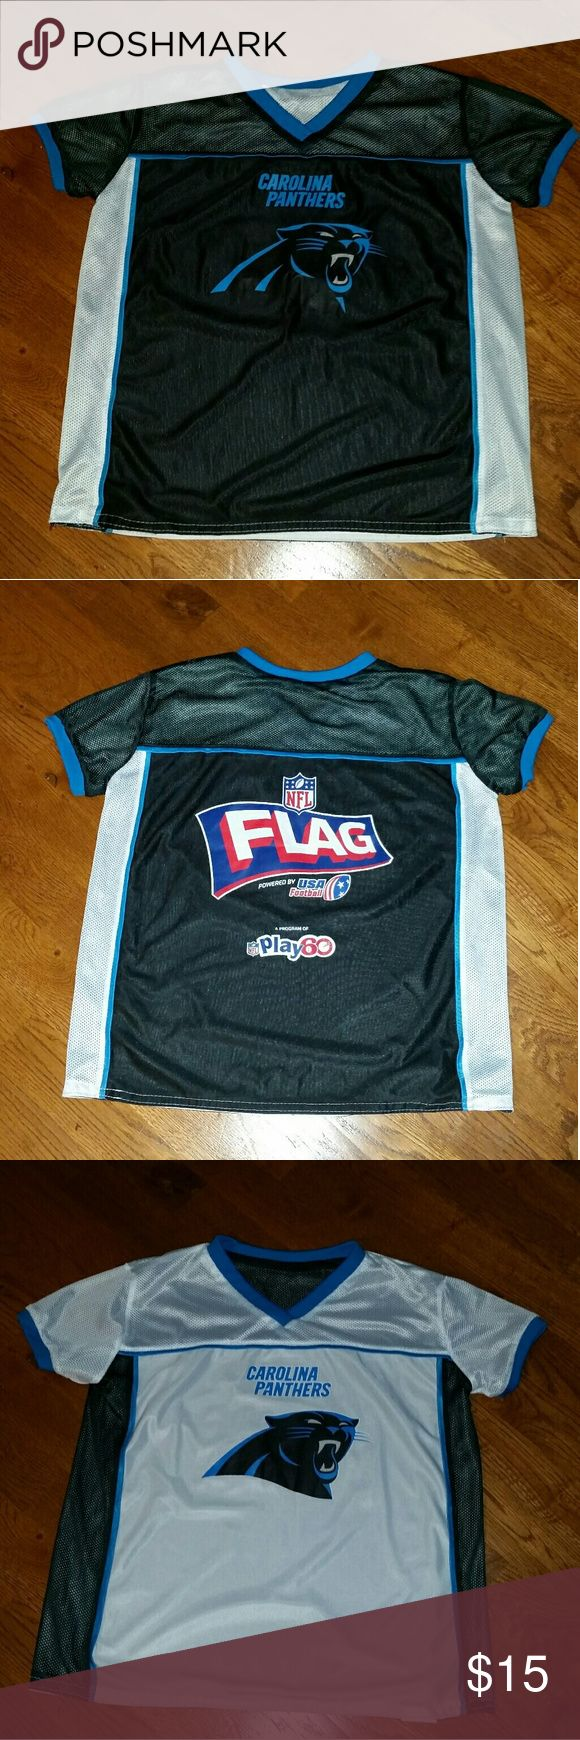 Carolina Panthers NFL Flag Football Jersey Size YL Official Boy's Carolina Panthers Reversible NFL Flag Football Jersey Size YLG. Great condition. There are a few cracks on the logos from washing. See cracking in the pictures above. All items come from a smoke-free home. There are no refunds and no returns so please ask questions before purchasing. Thank you! NFL Other